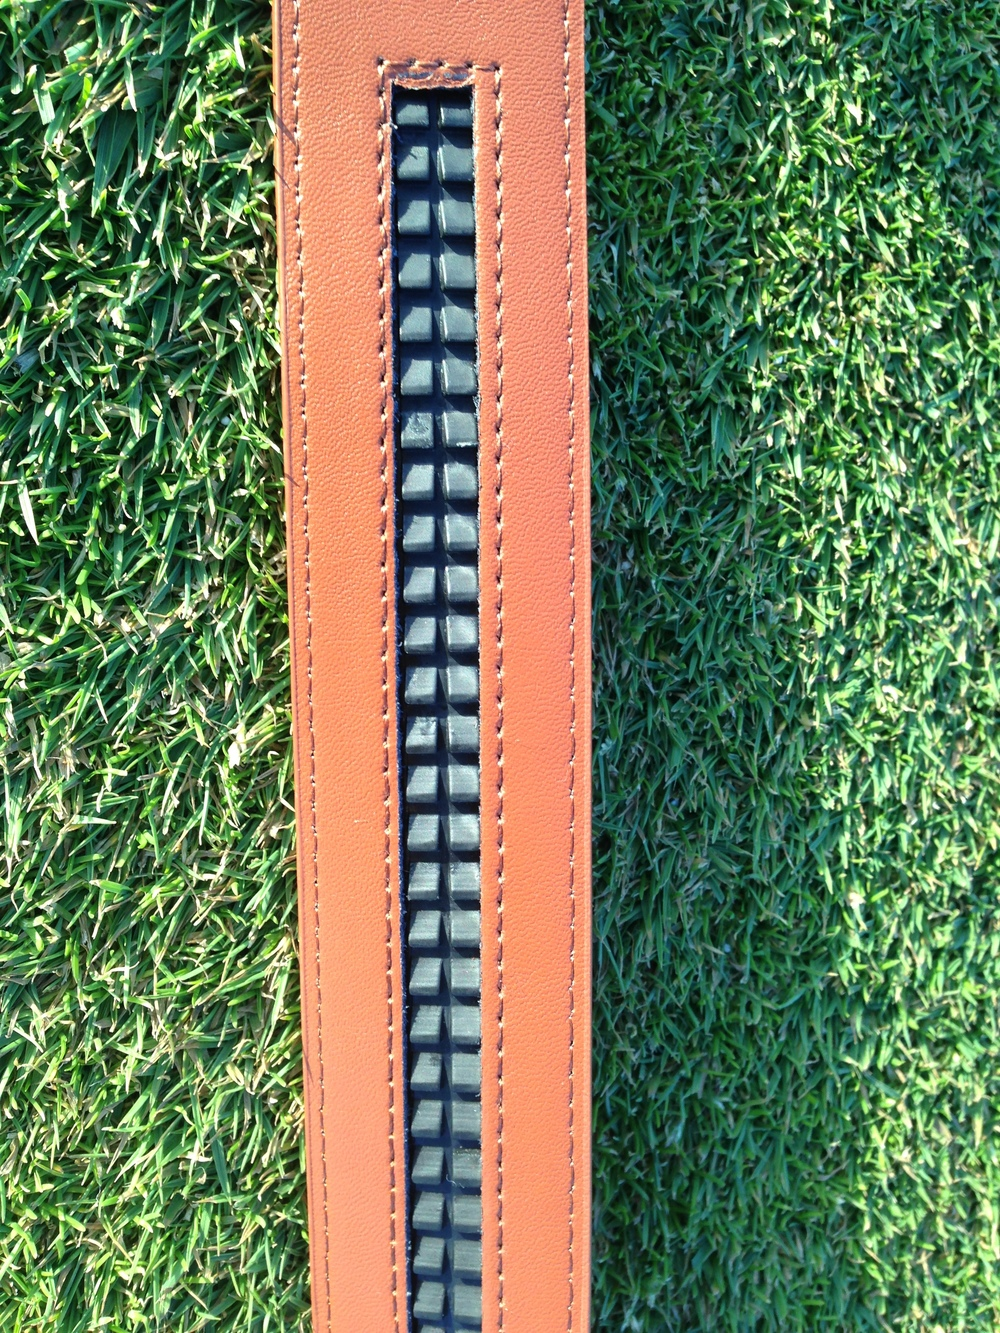 Mission belt review Golf by josh hirst pga professional